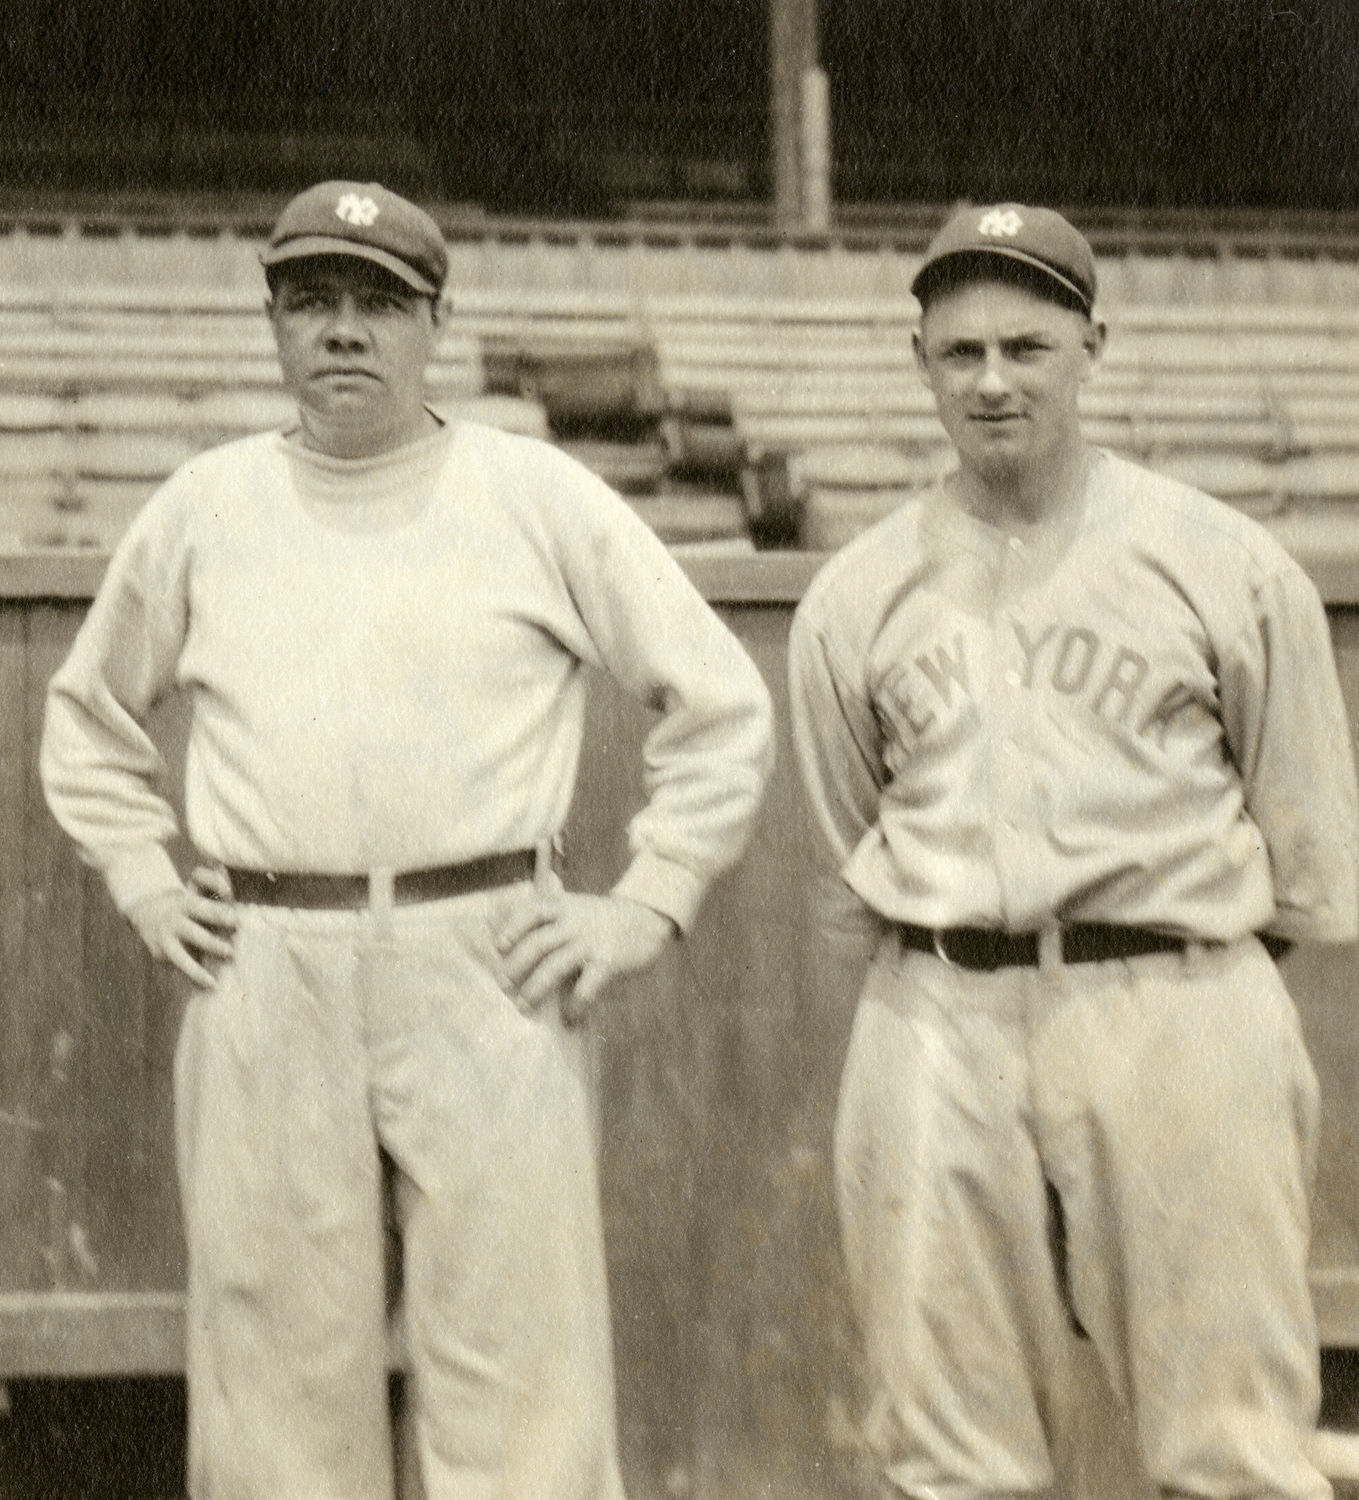 babe ruth short essay Research papers research paper (paper 2093) on babe ruth: babe ruth changed the game of baseball george herman.